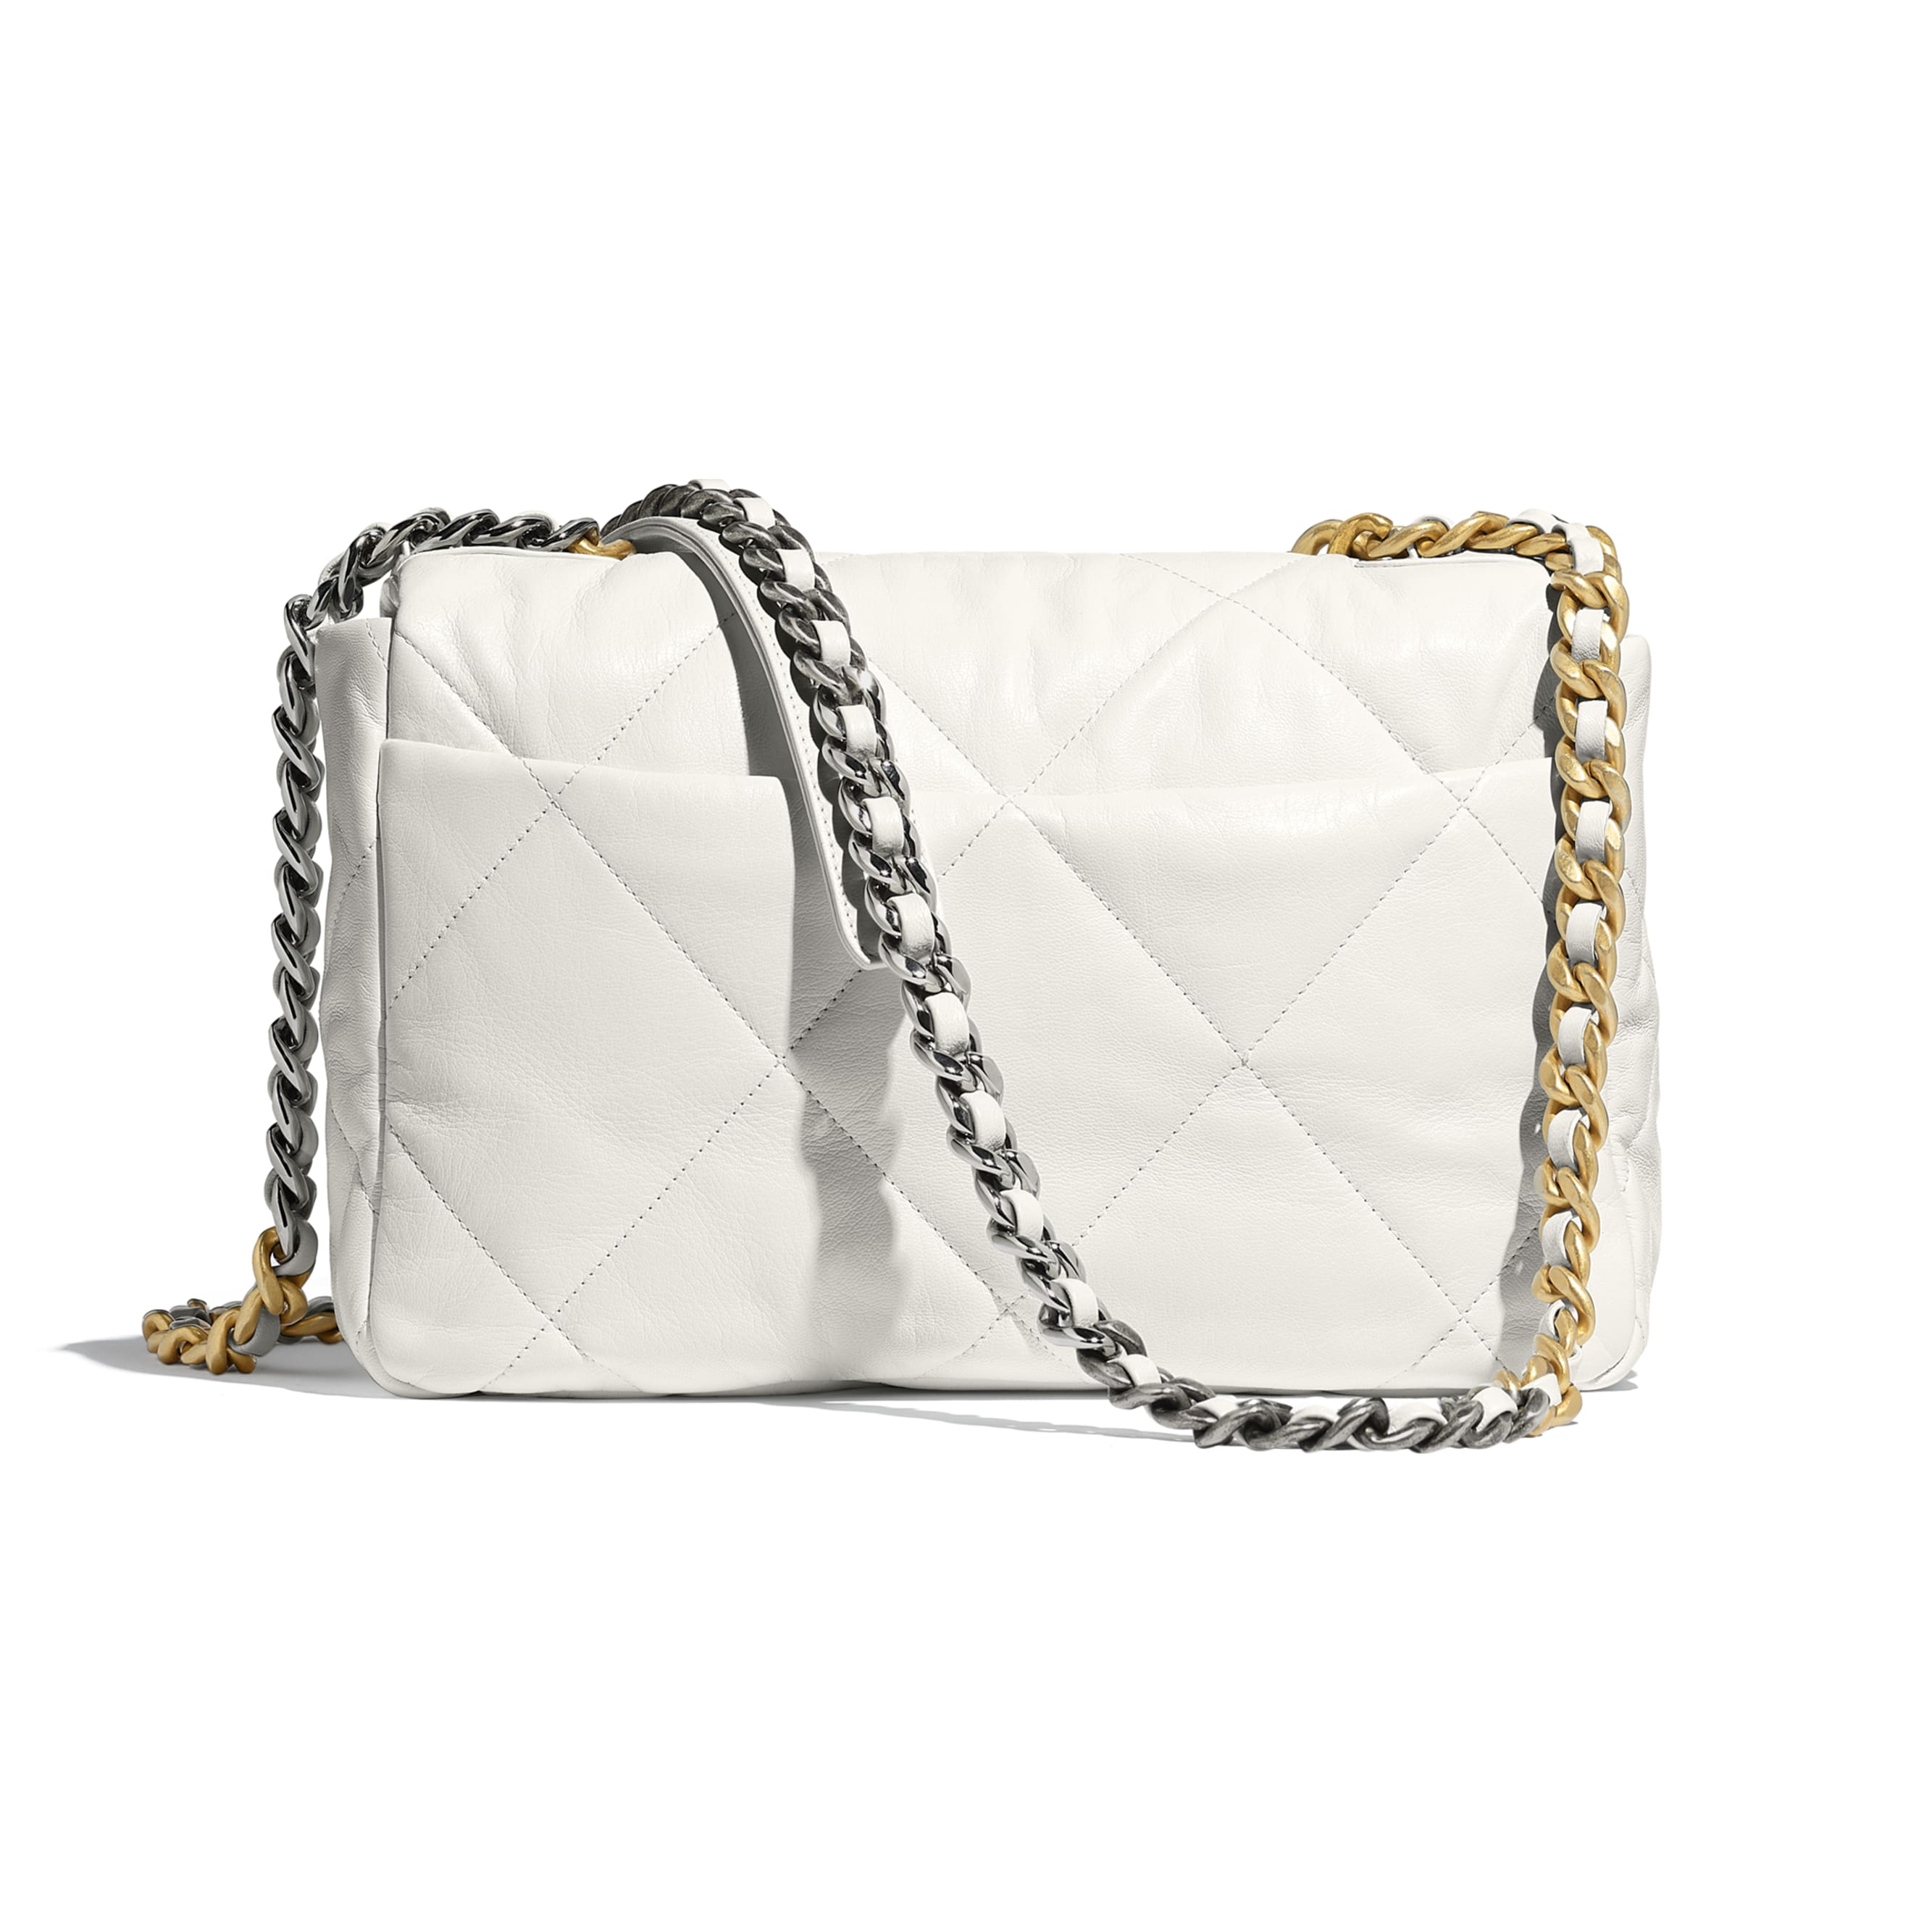 CHANEL 19 Large Flap Bag - White - Goatskin, Gold-Tone, Silver-Tone & Ruthenium-Finish Metal - Alternative view - see standard sized version